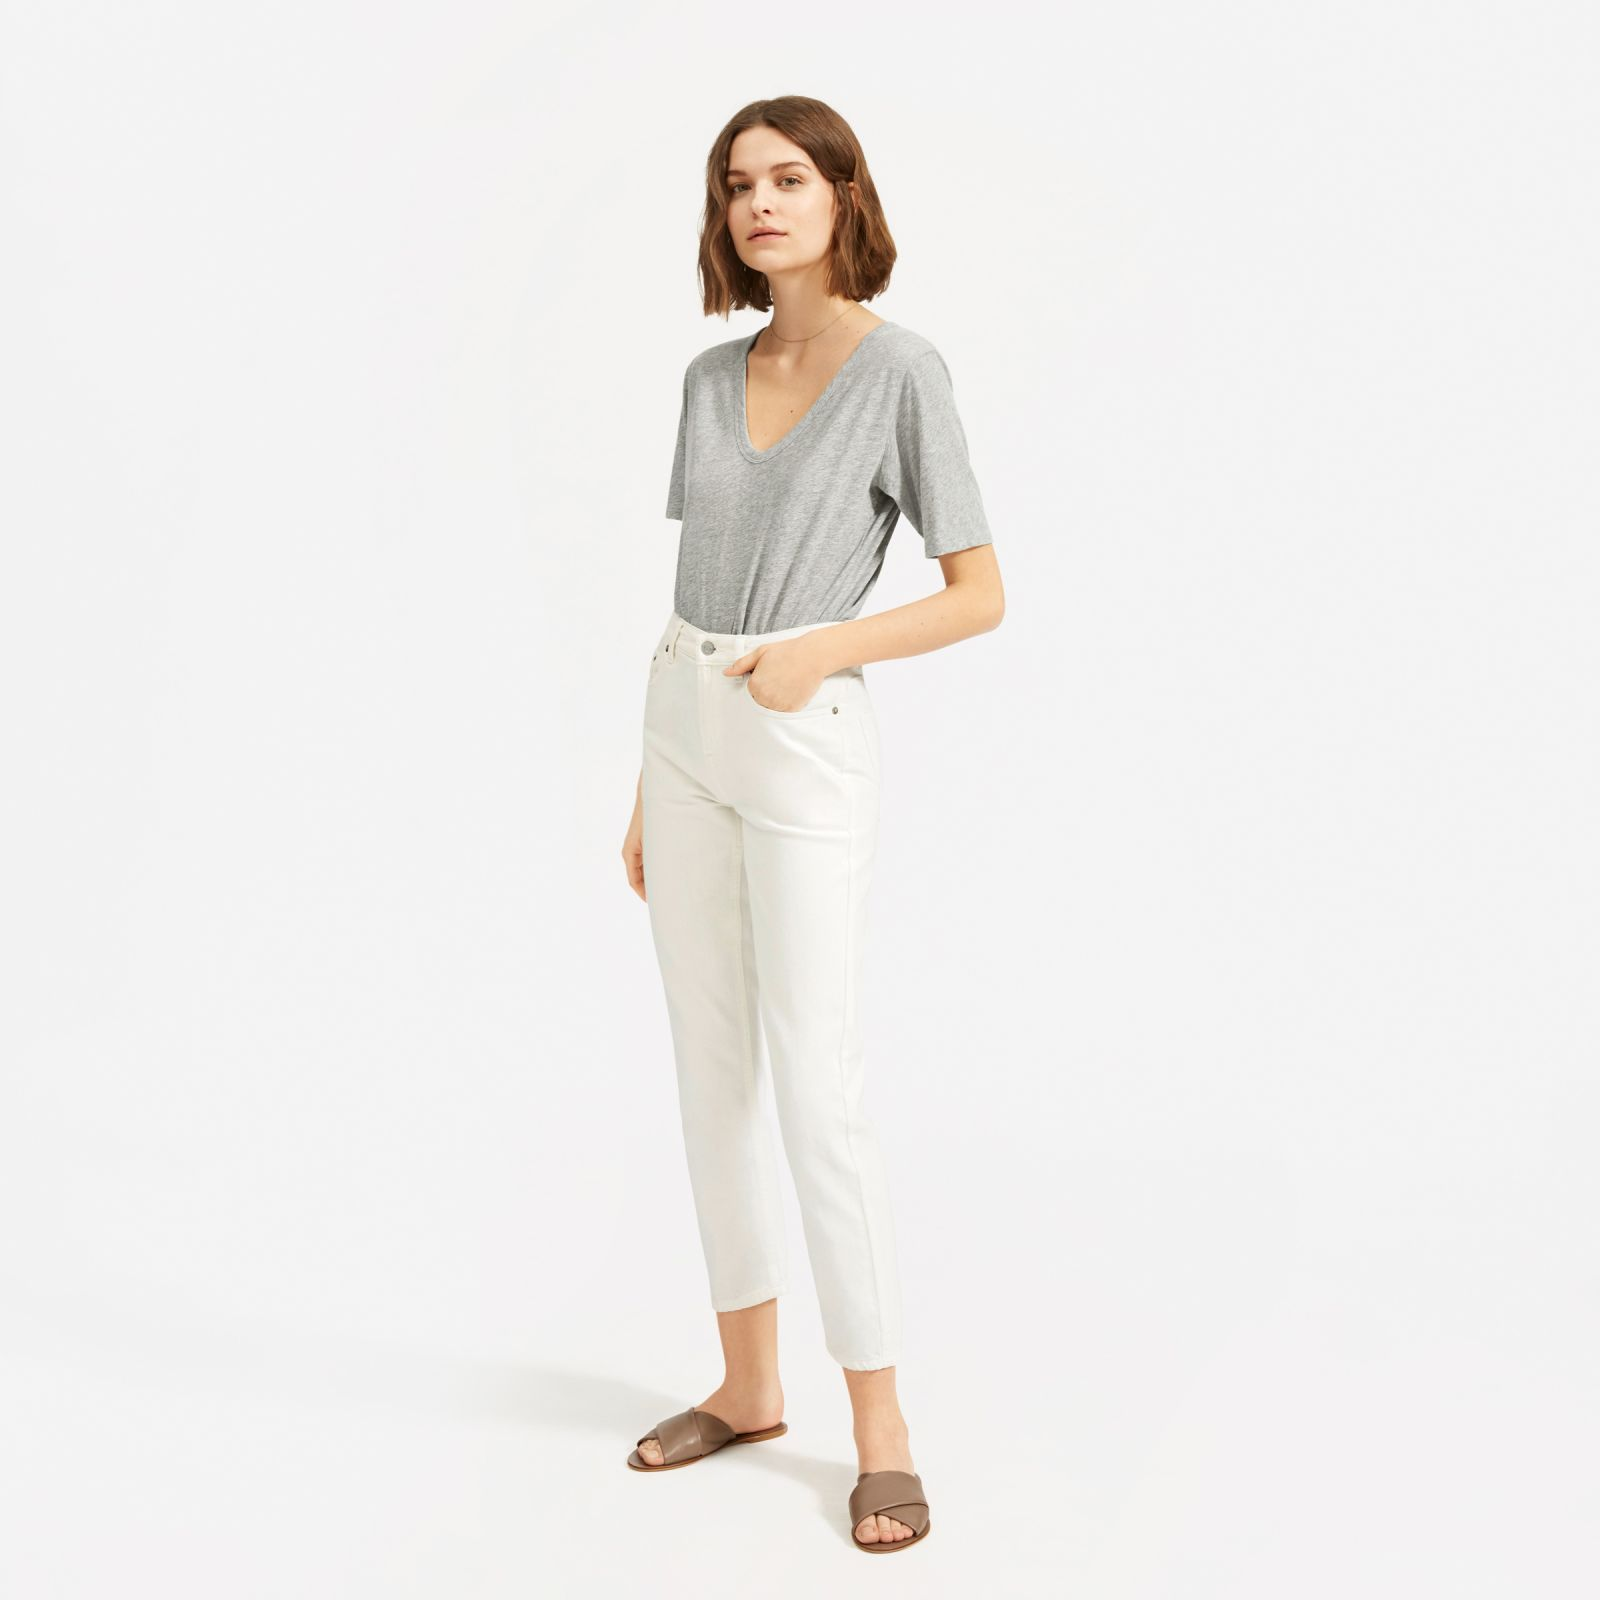 women's air oversized v-neck t-shirt by everlane in heather grey, size xl